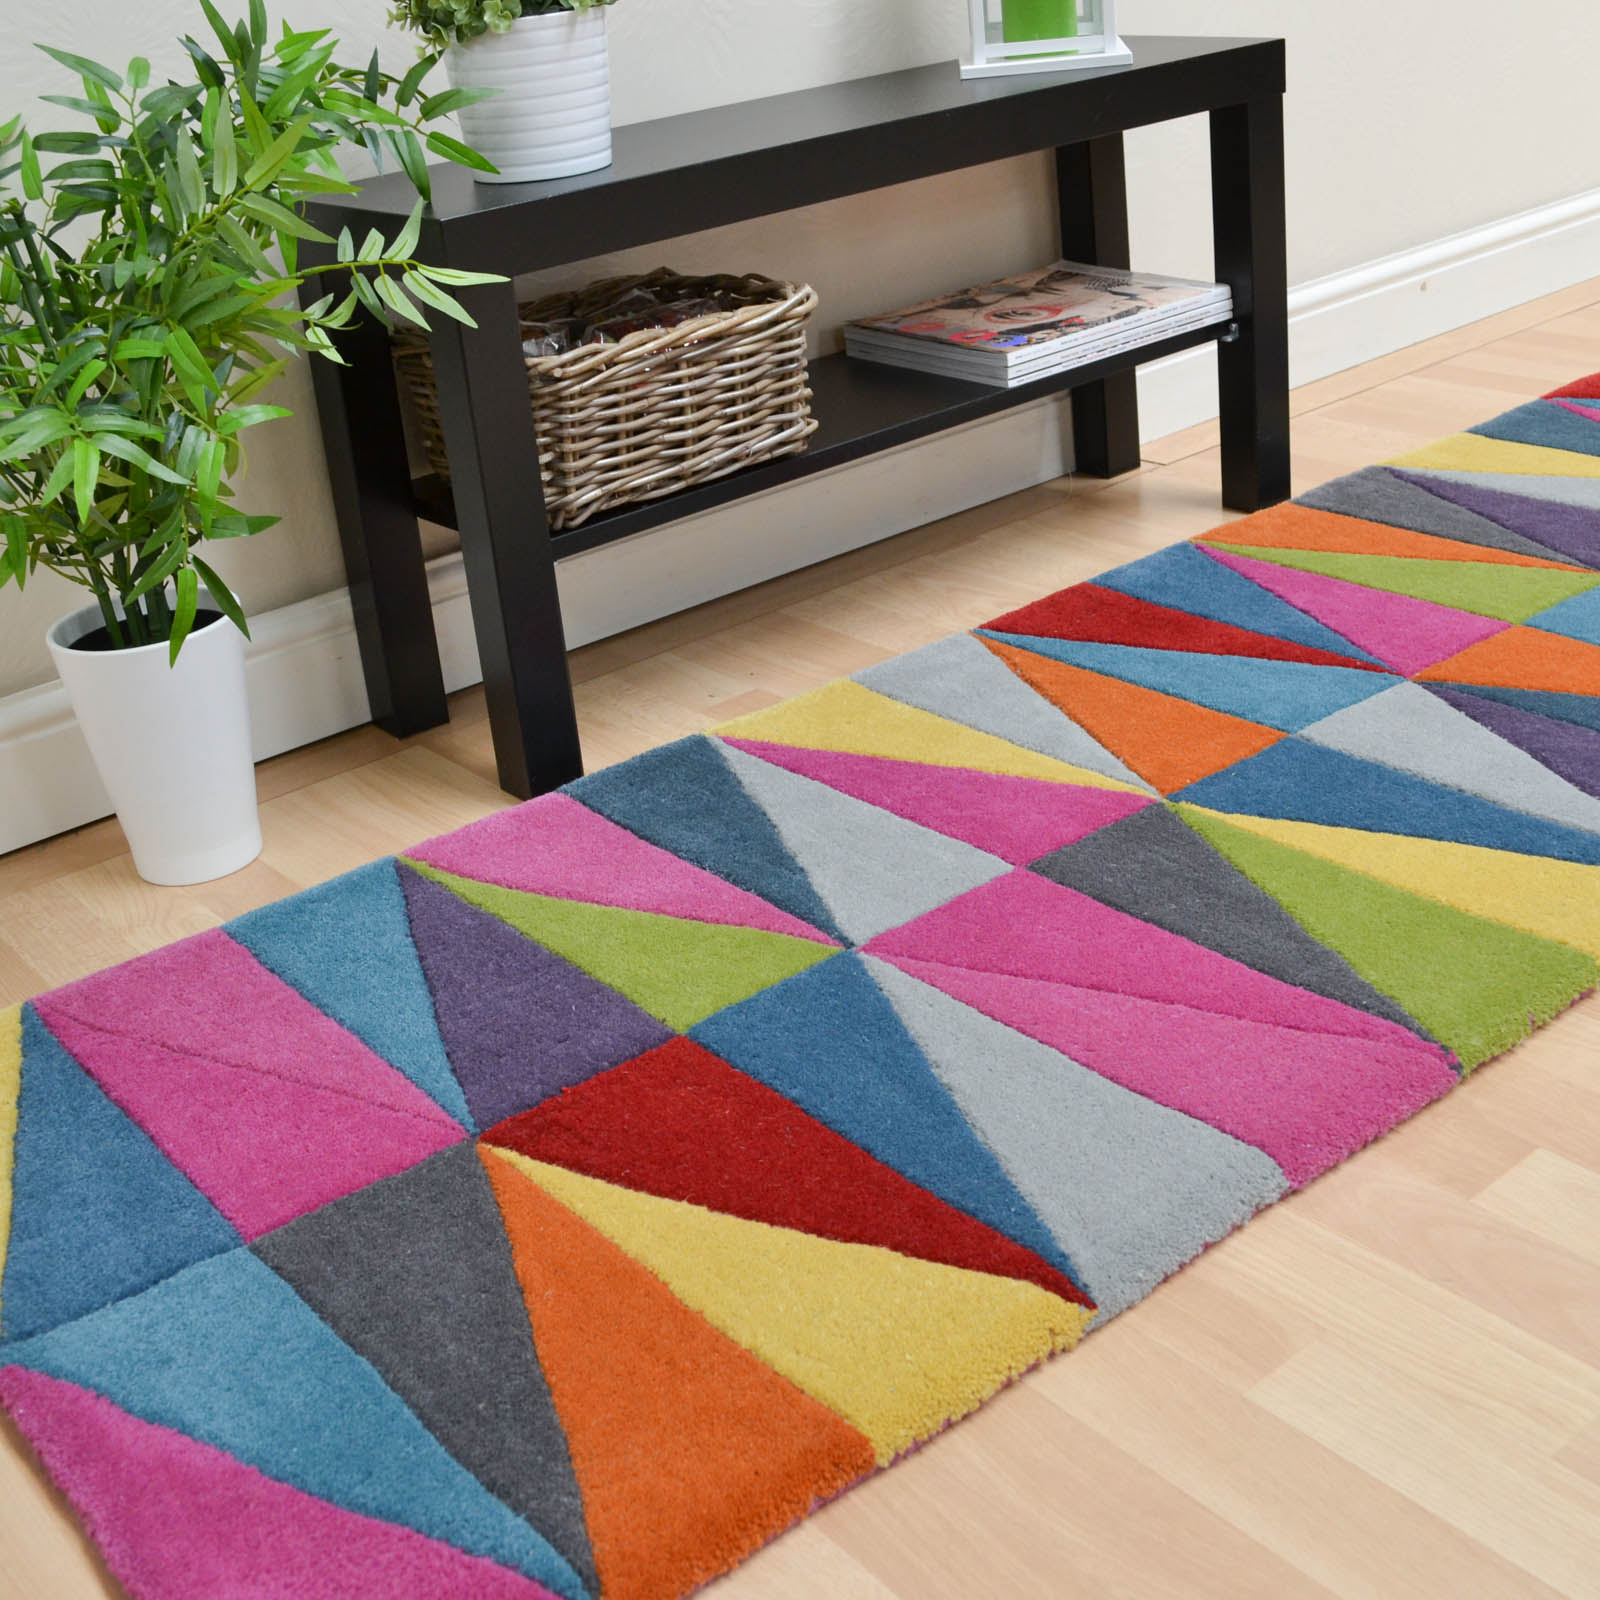 Washable Hall Rugs: Funk Hallway Runners, Multi Coloured, Natural, Wool, Buy